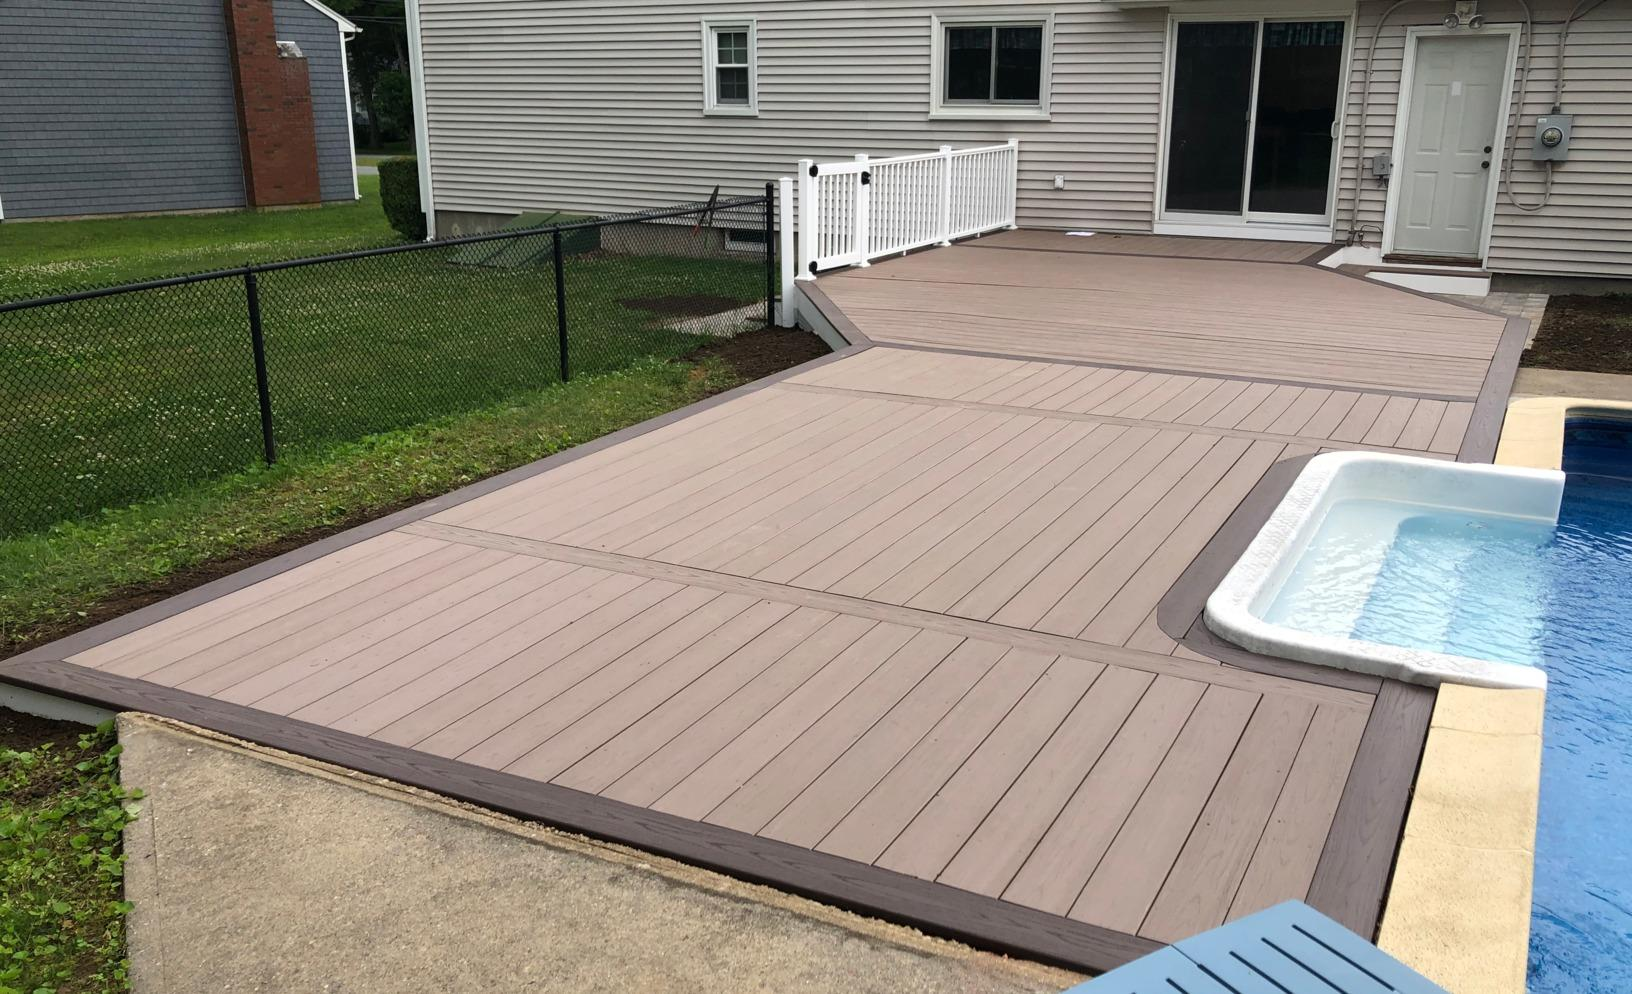 Stonington, CT Pool Deck Replacement - After Photo